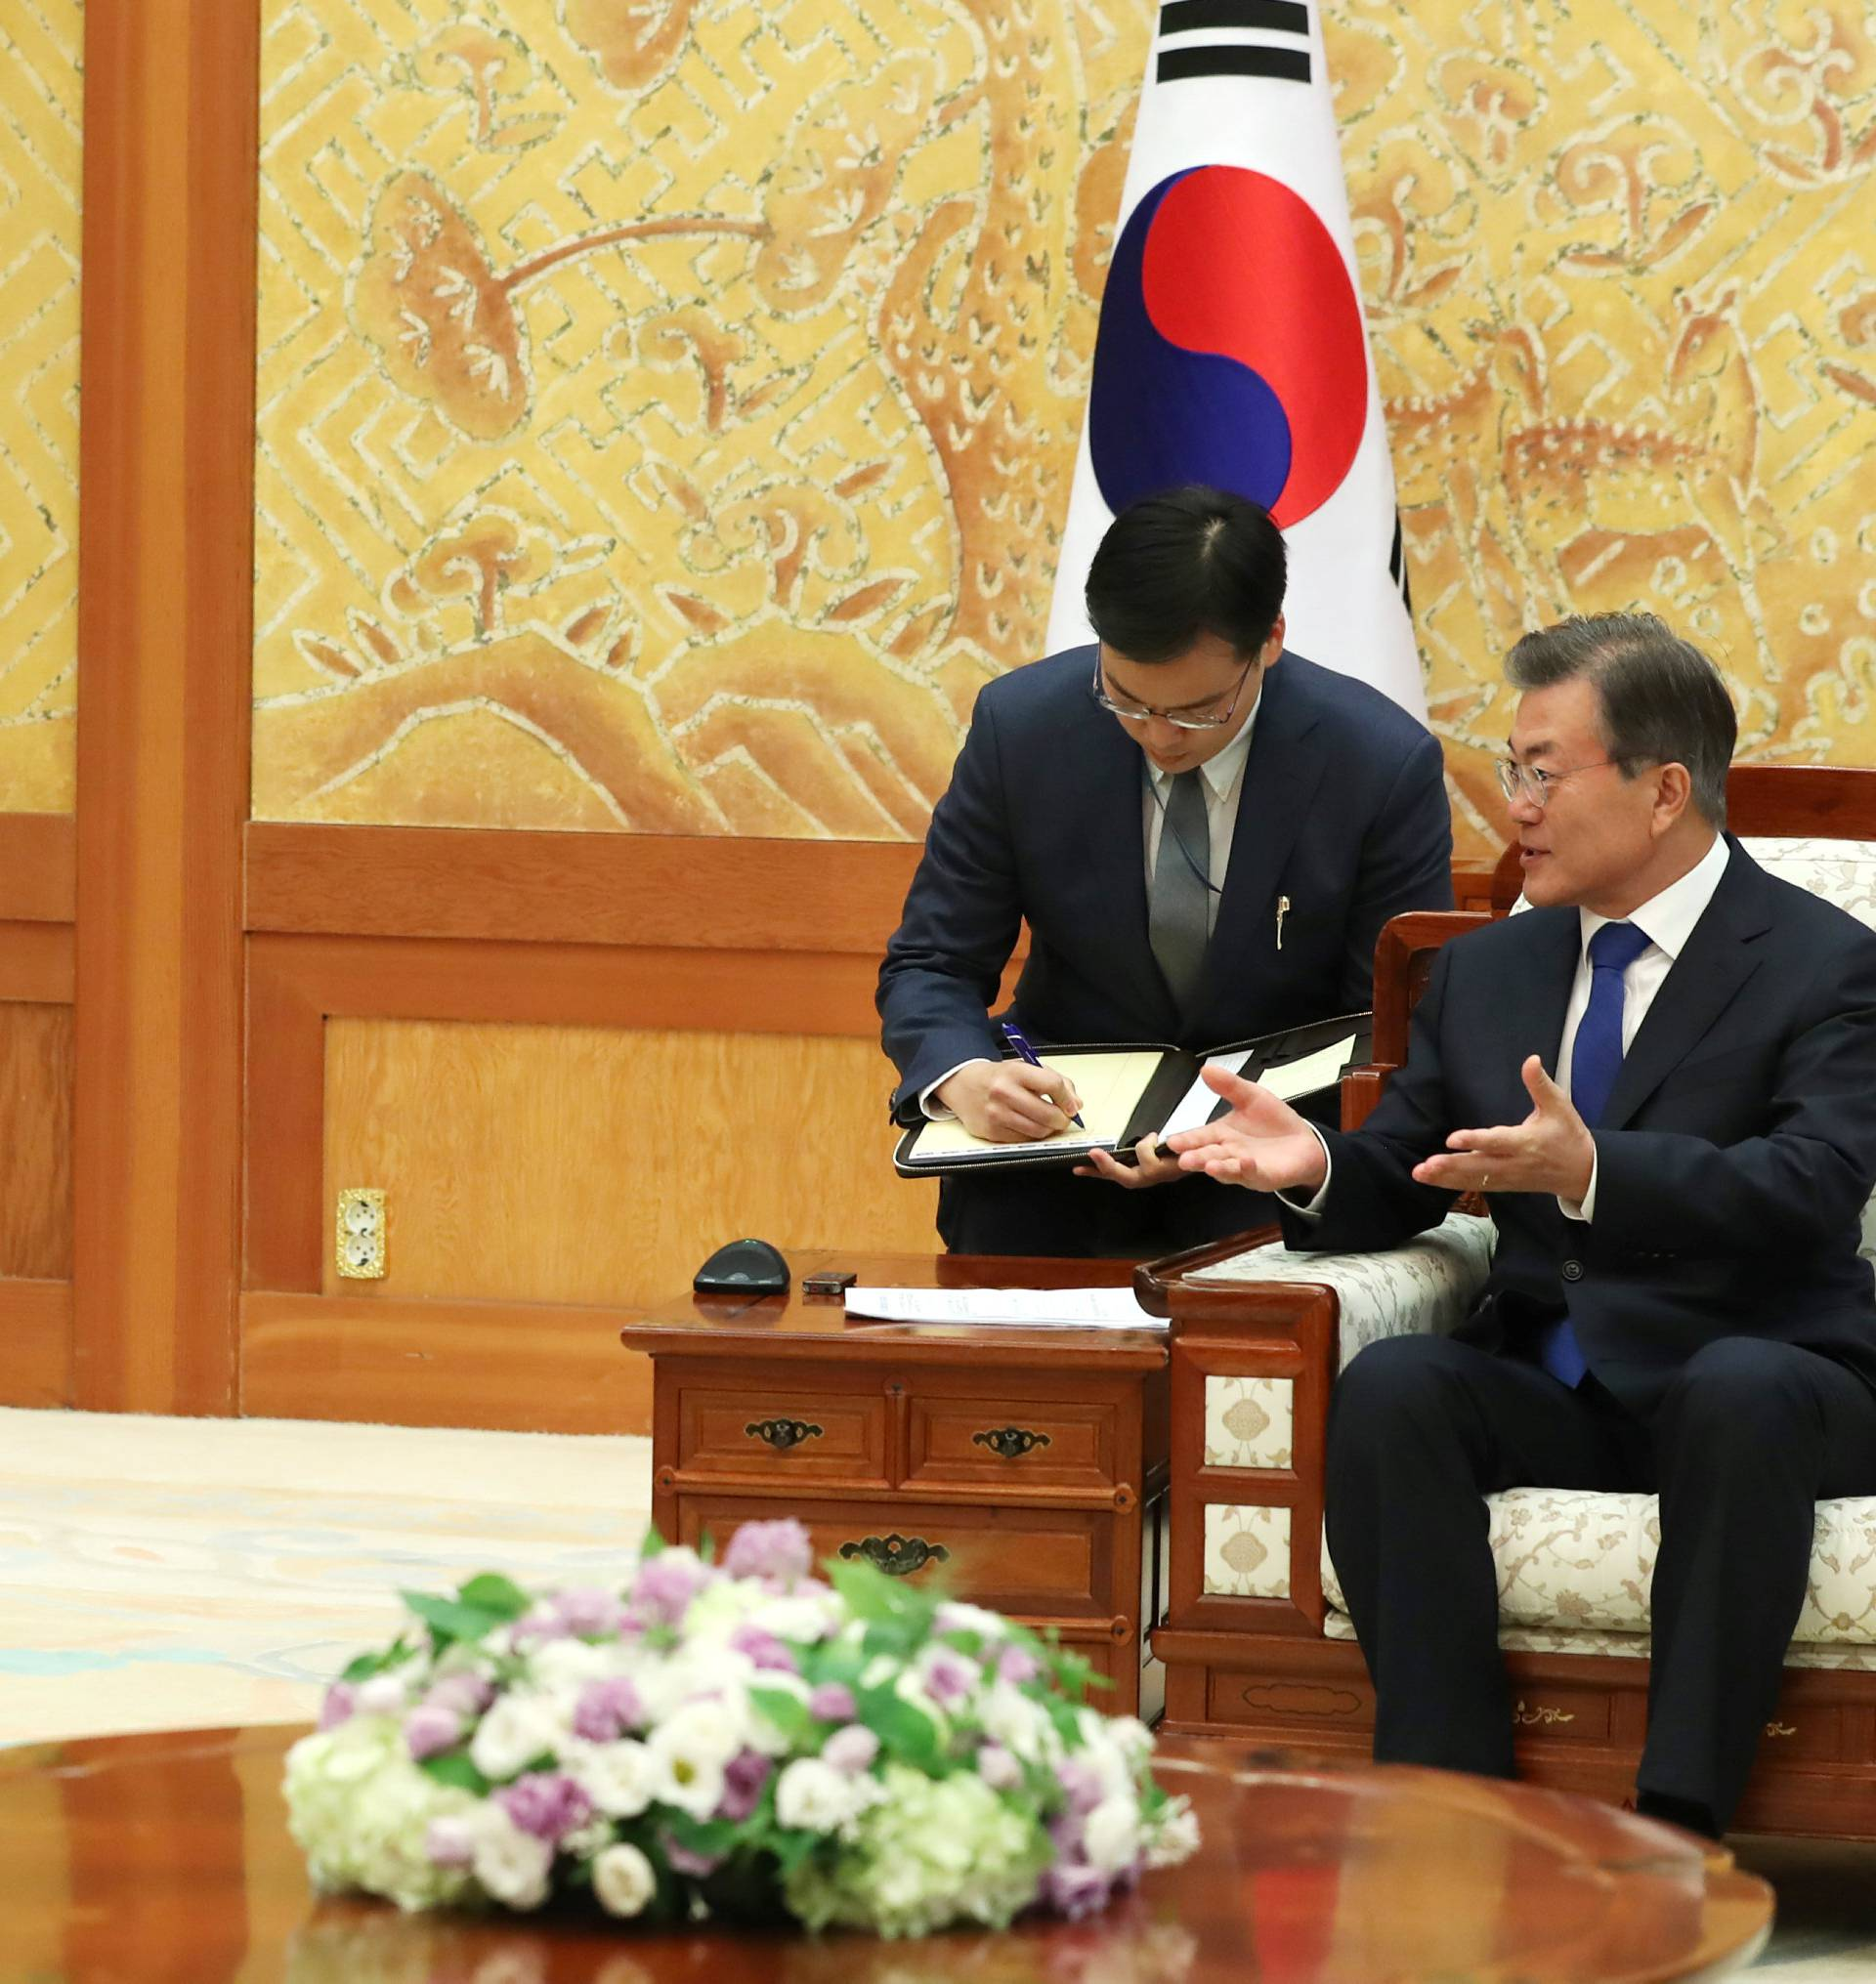 South Korean President Moon Jae-in talks with U.S. Chairman of the Joint Chiefs of Staff Gen. Joseph Dunford during their meeting at the Presidential Blue House in Seoul